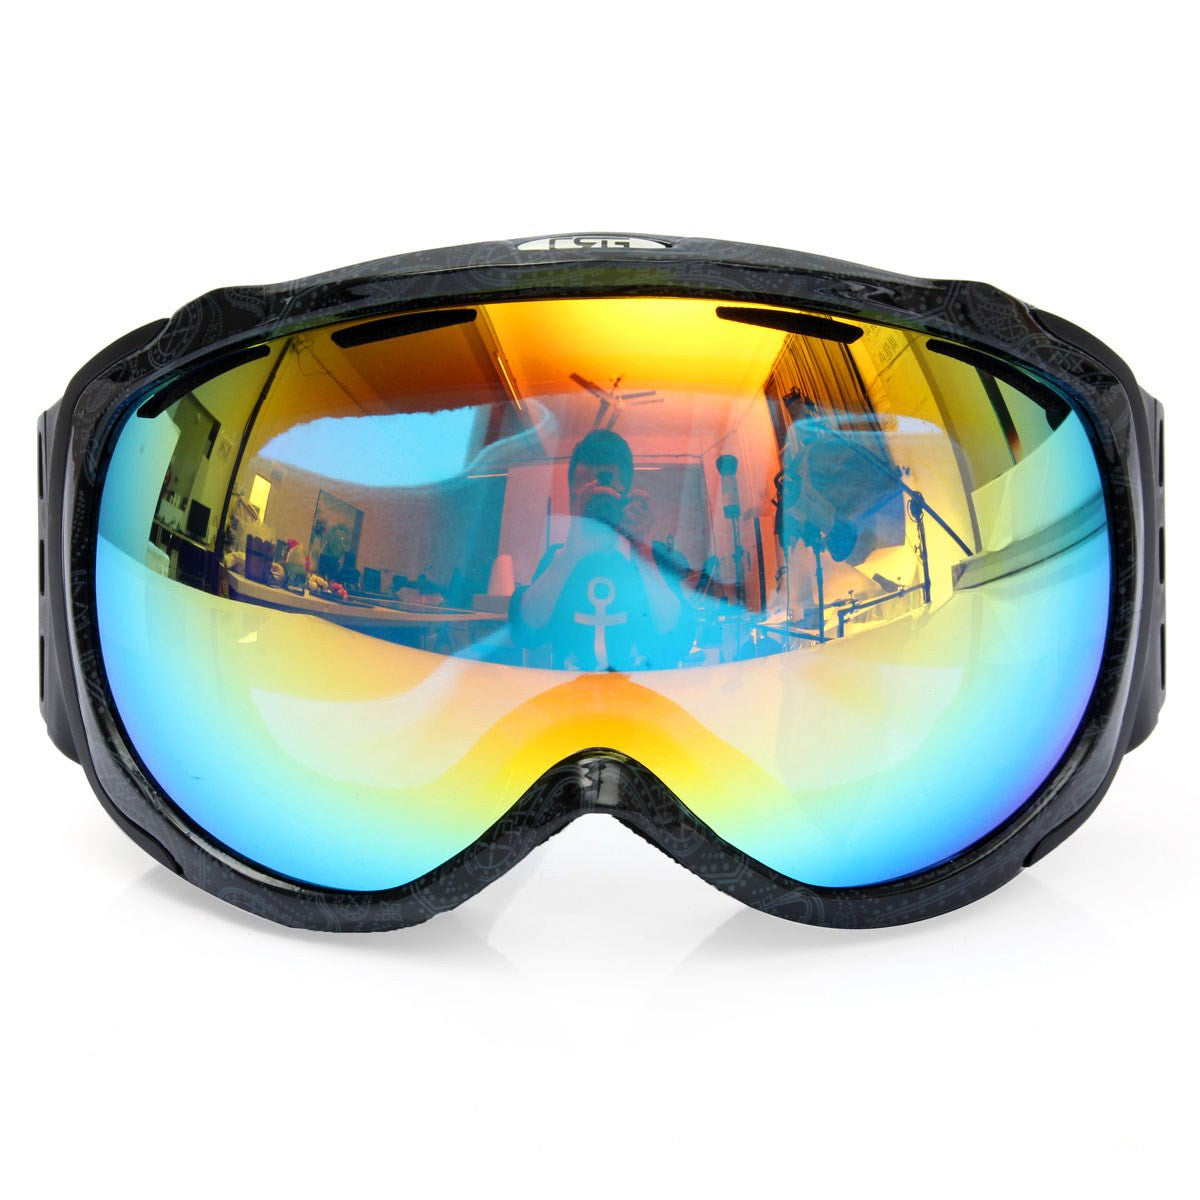 581832bfc0 CRG Spherical Anti-fog Dual Lens Snowboard Ski Goggles - SeasonsTech